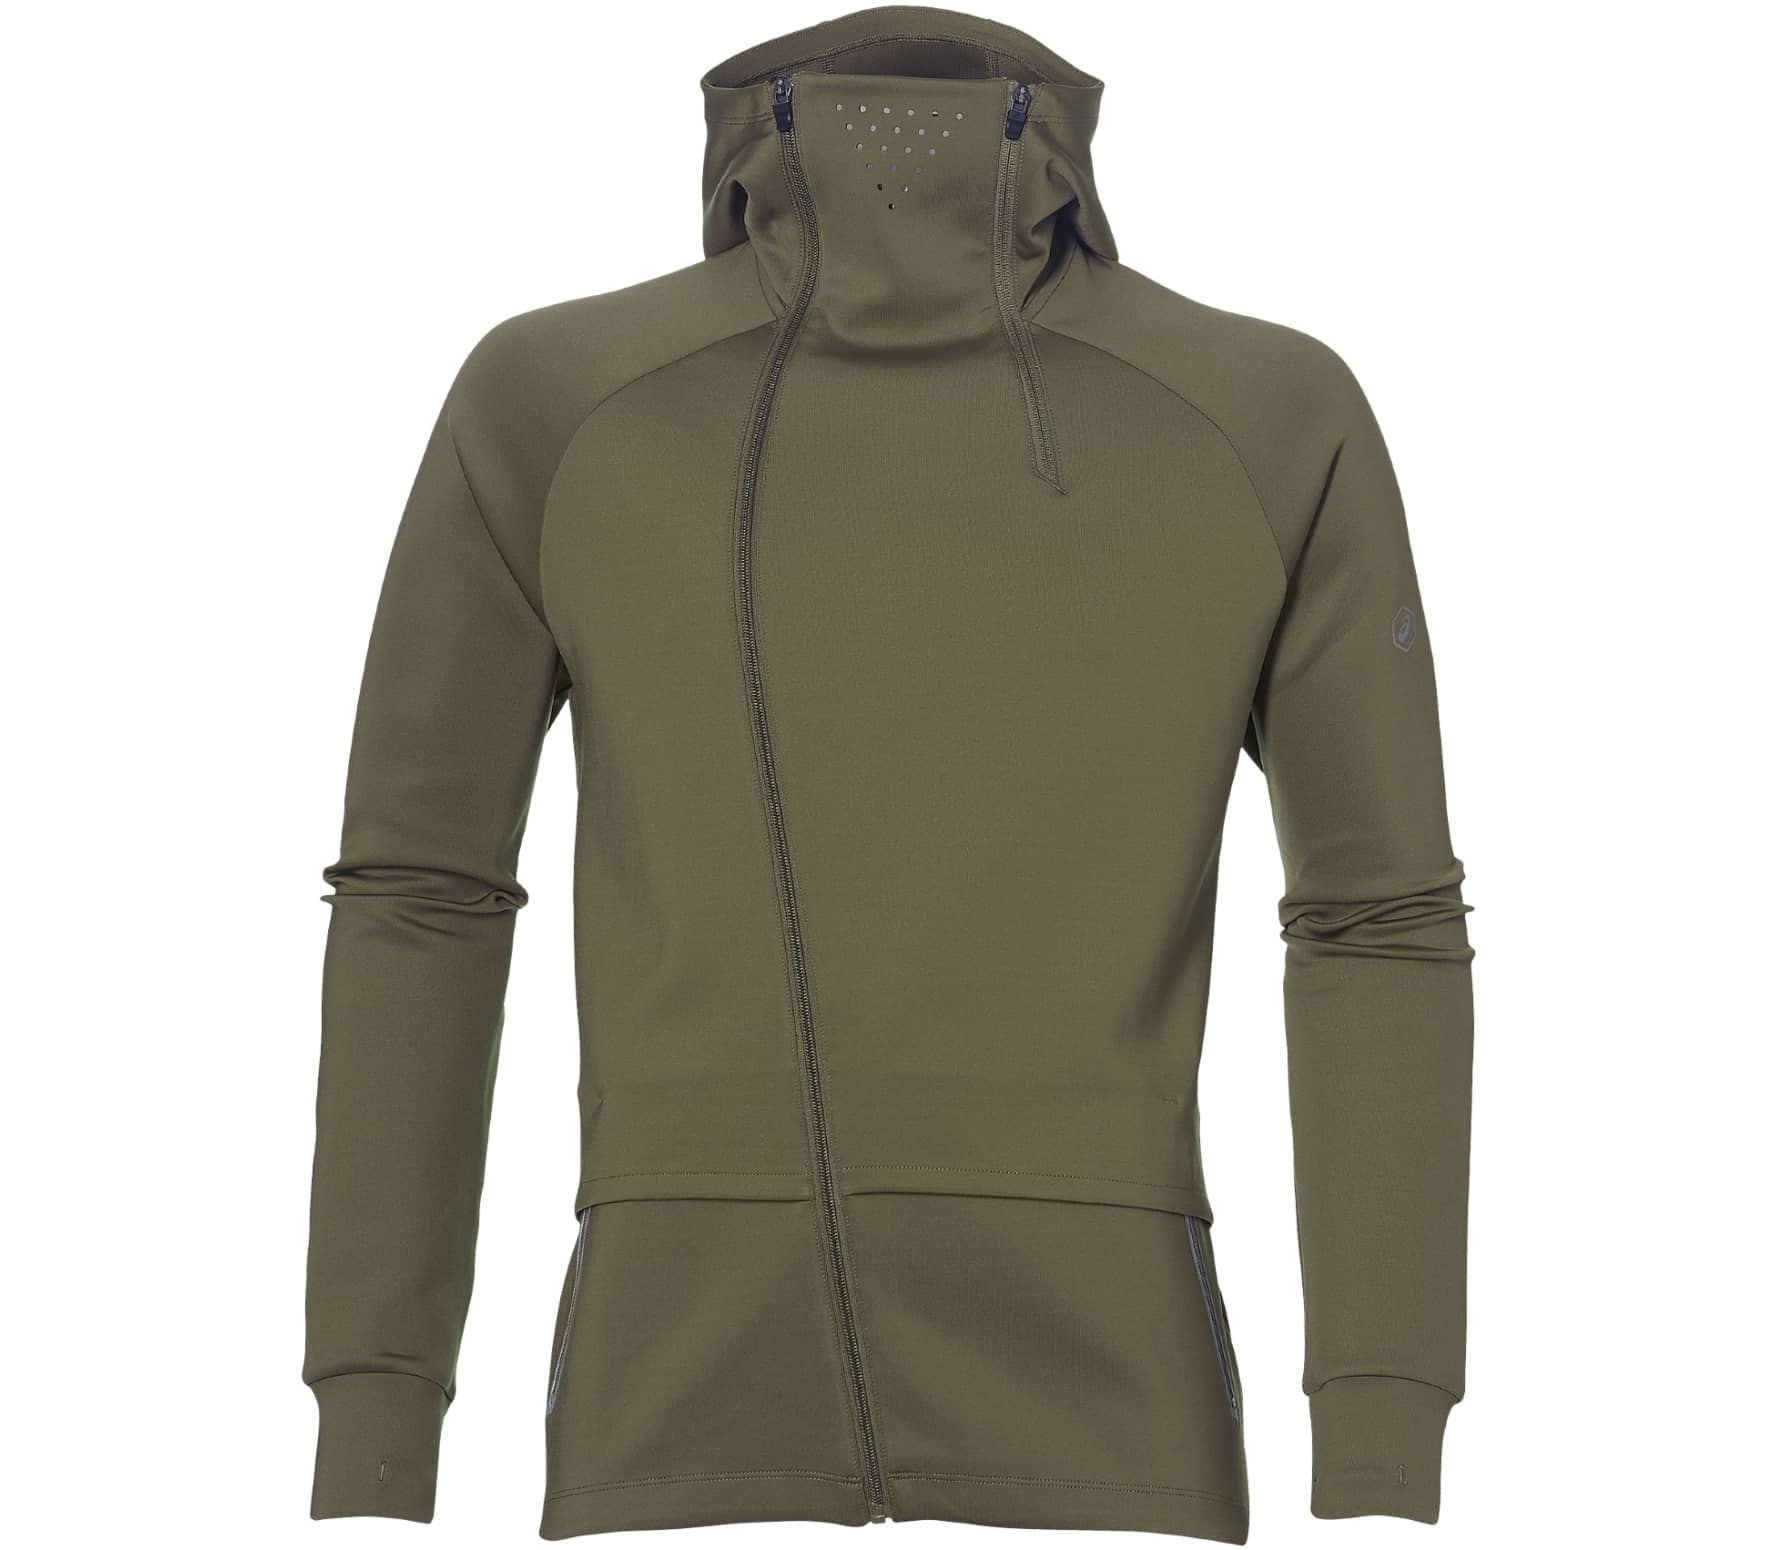 ASICS - FuzeX Knit men's running jacket (khaki) - S thumbnail